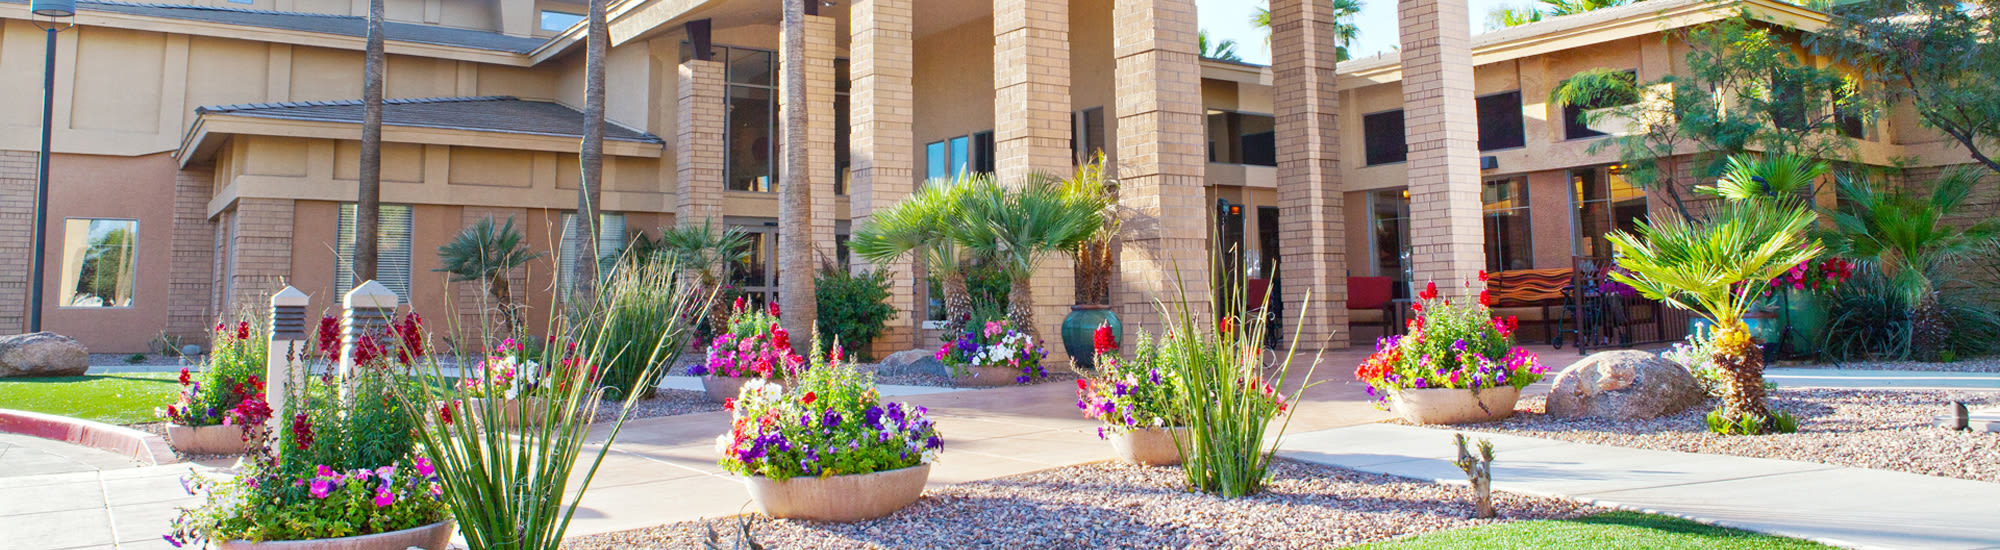 Contact at McDowell Village in Scottsdale, Arizona